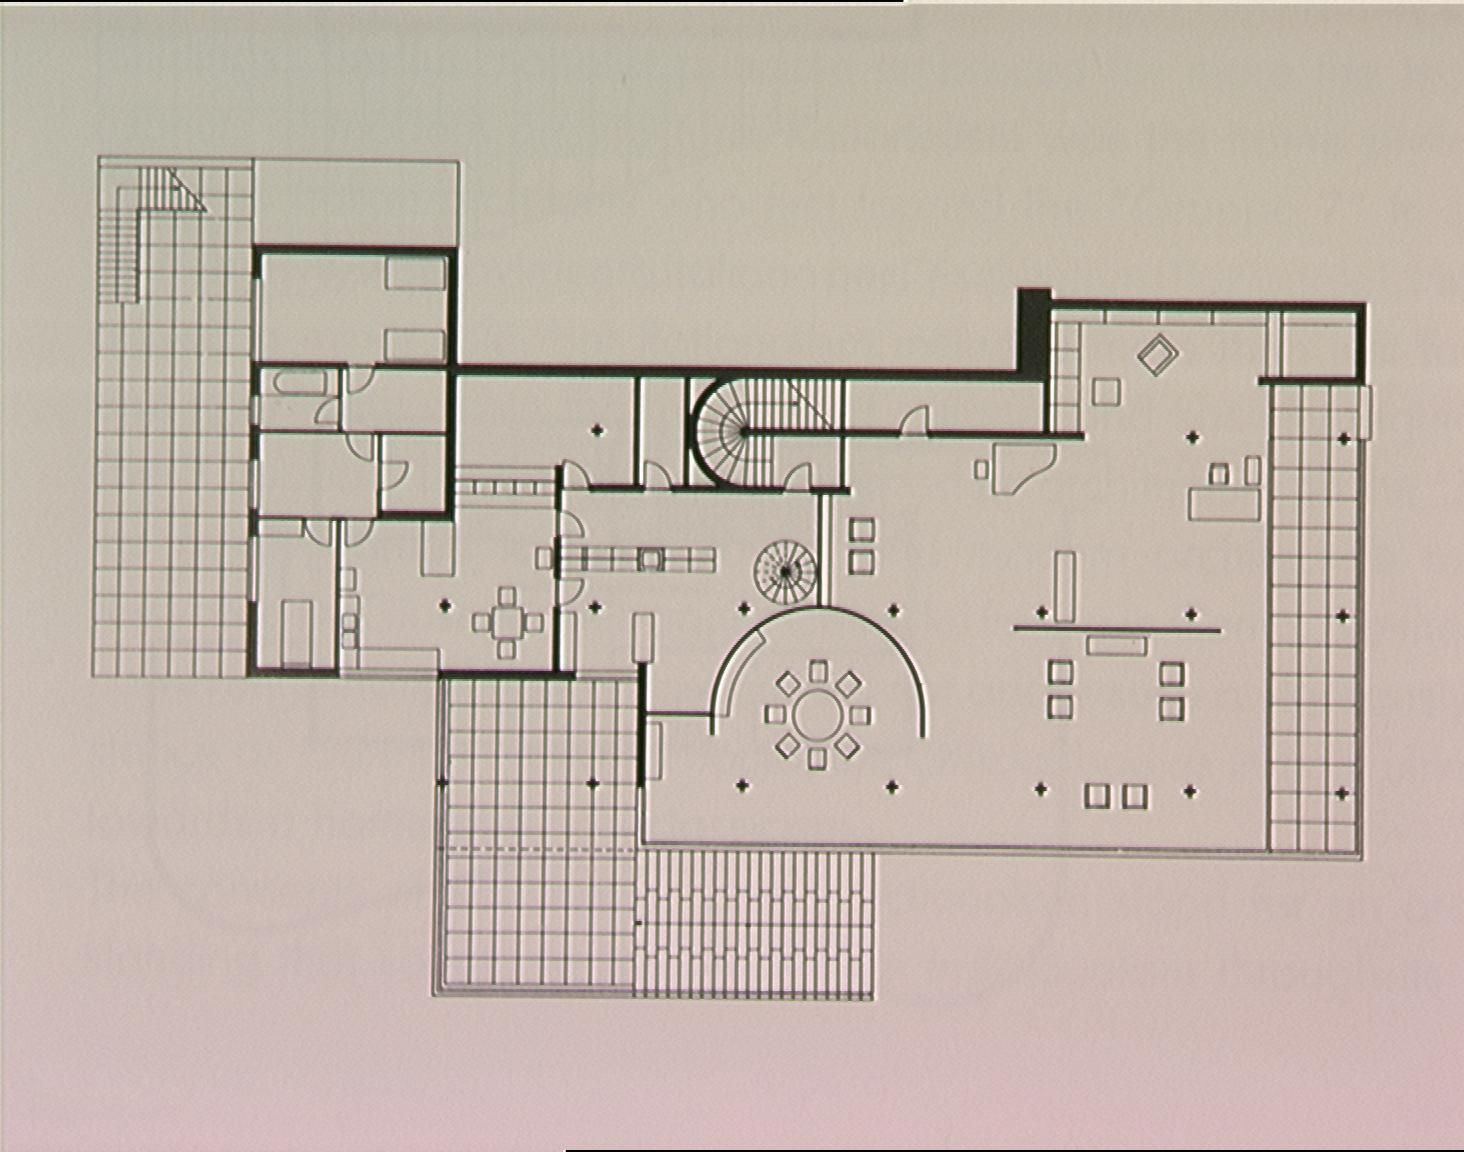 Plan Drawing Of The Tugendhat House Mies Van Der Rohe 1930 Brno